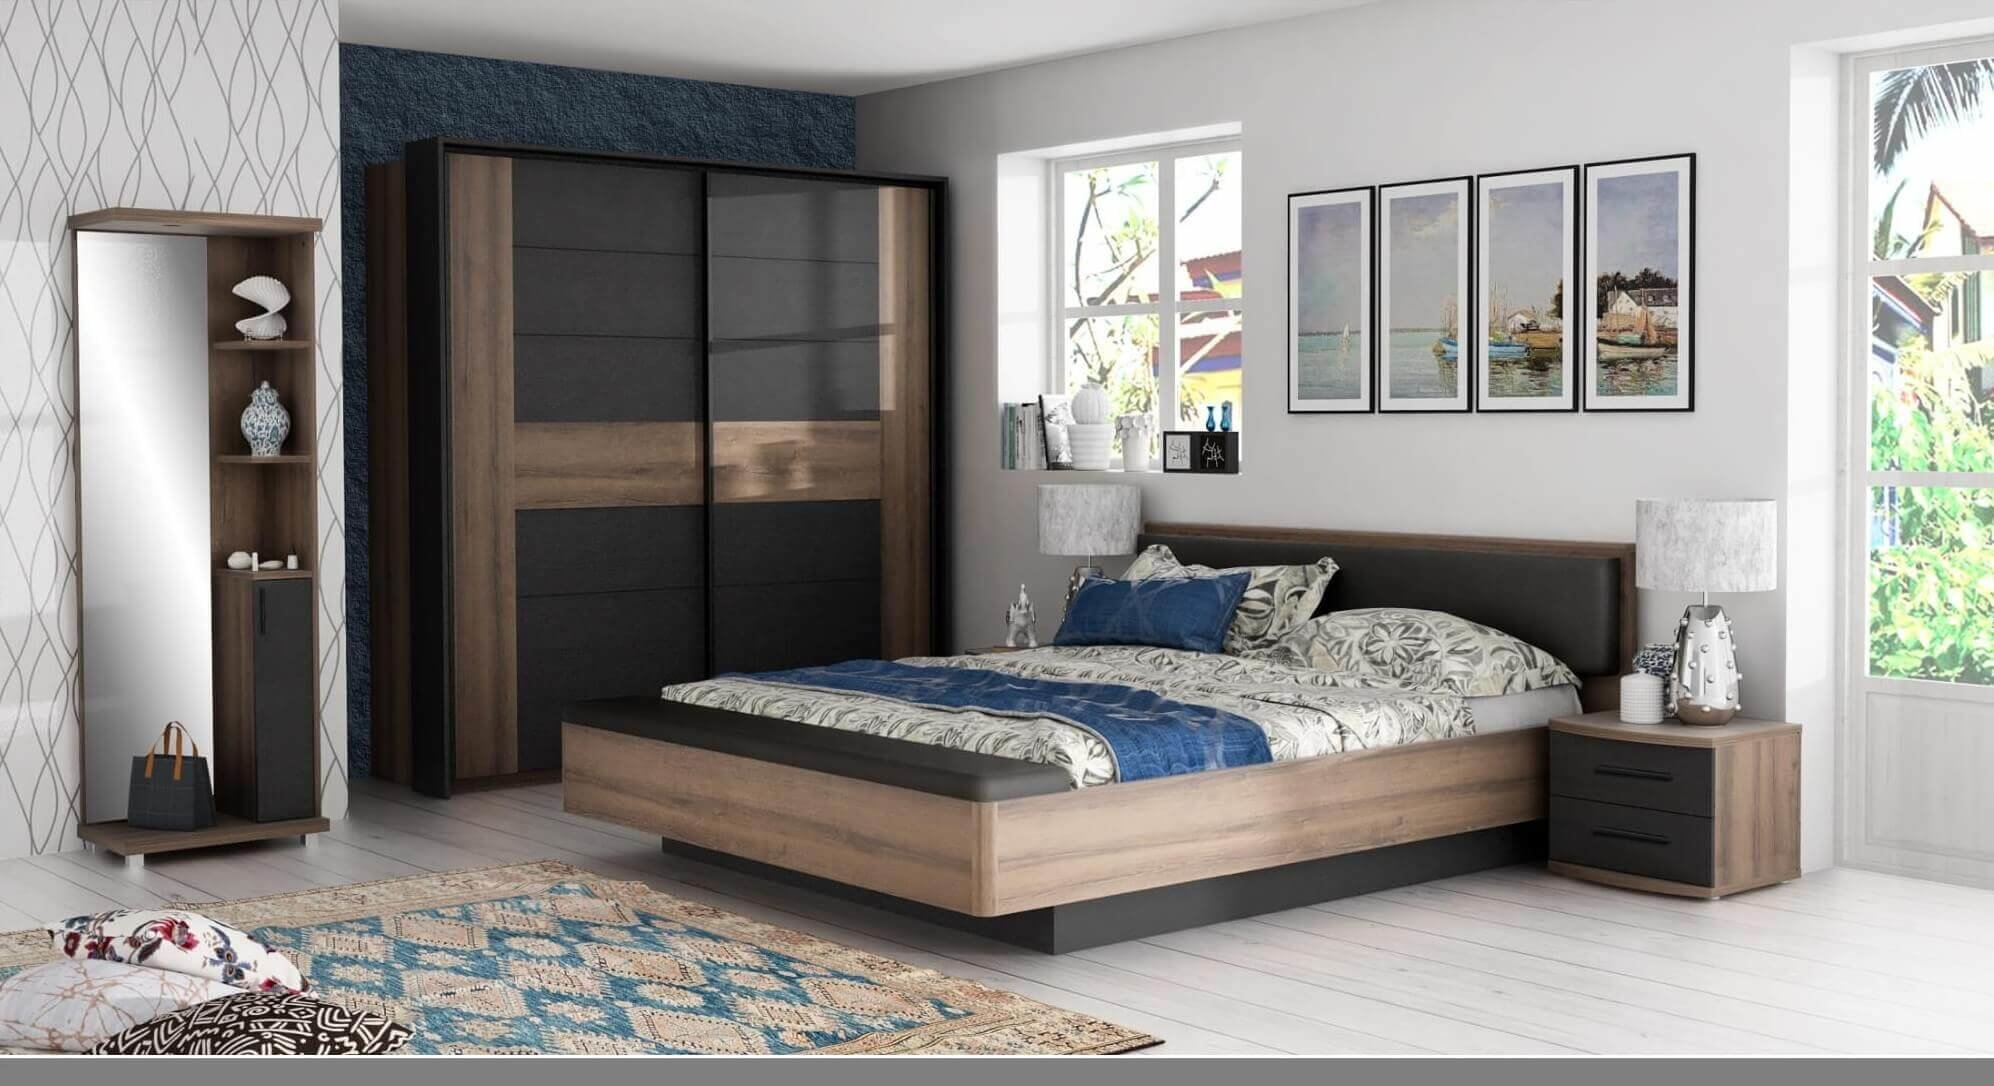 Best Buy Affordable Furniture At Zuari Furniture Shop In Noida With Pictures